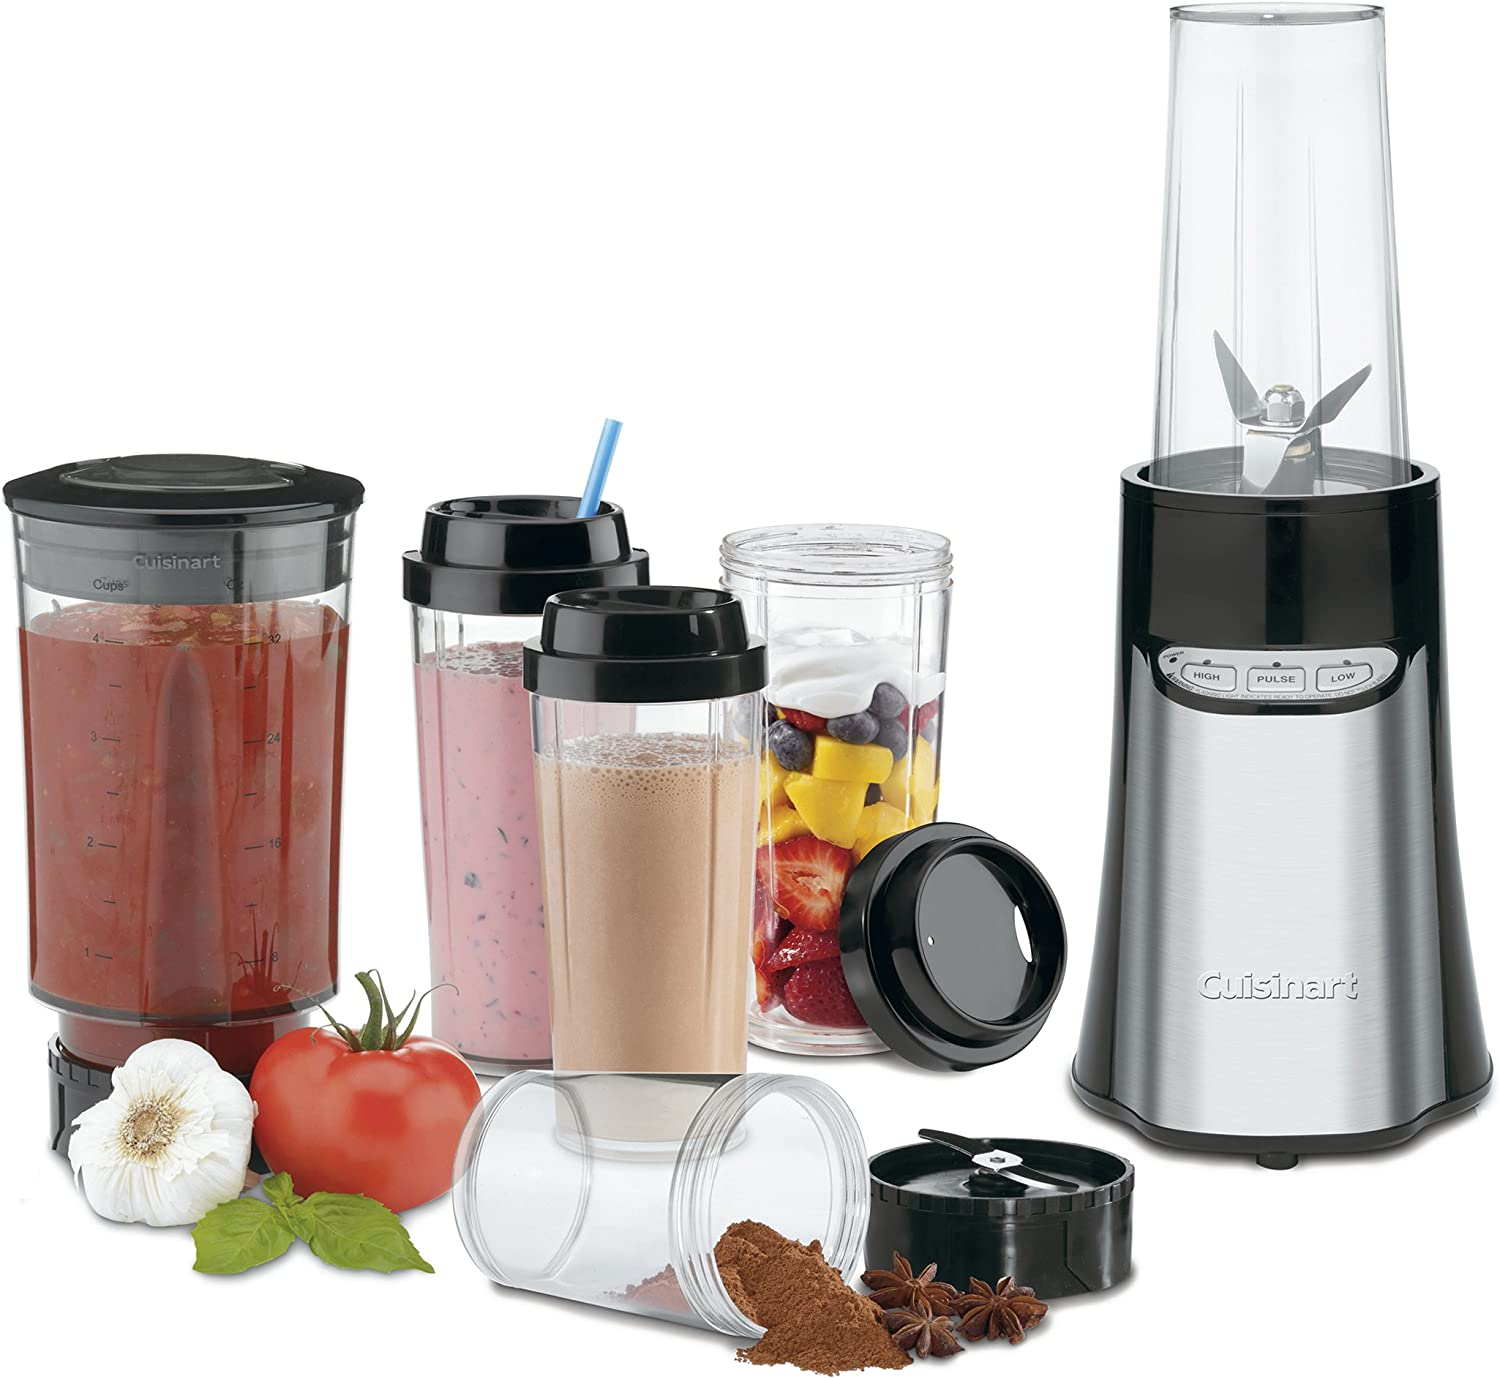 Best Blender Under $100 - Cuisinart CPB-300 Blender